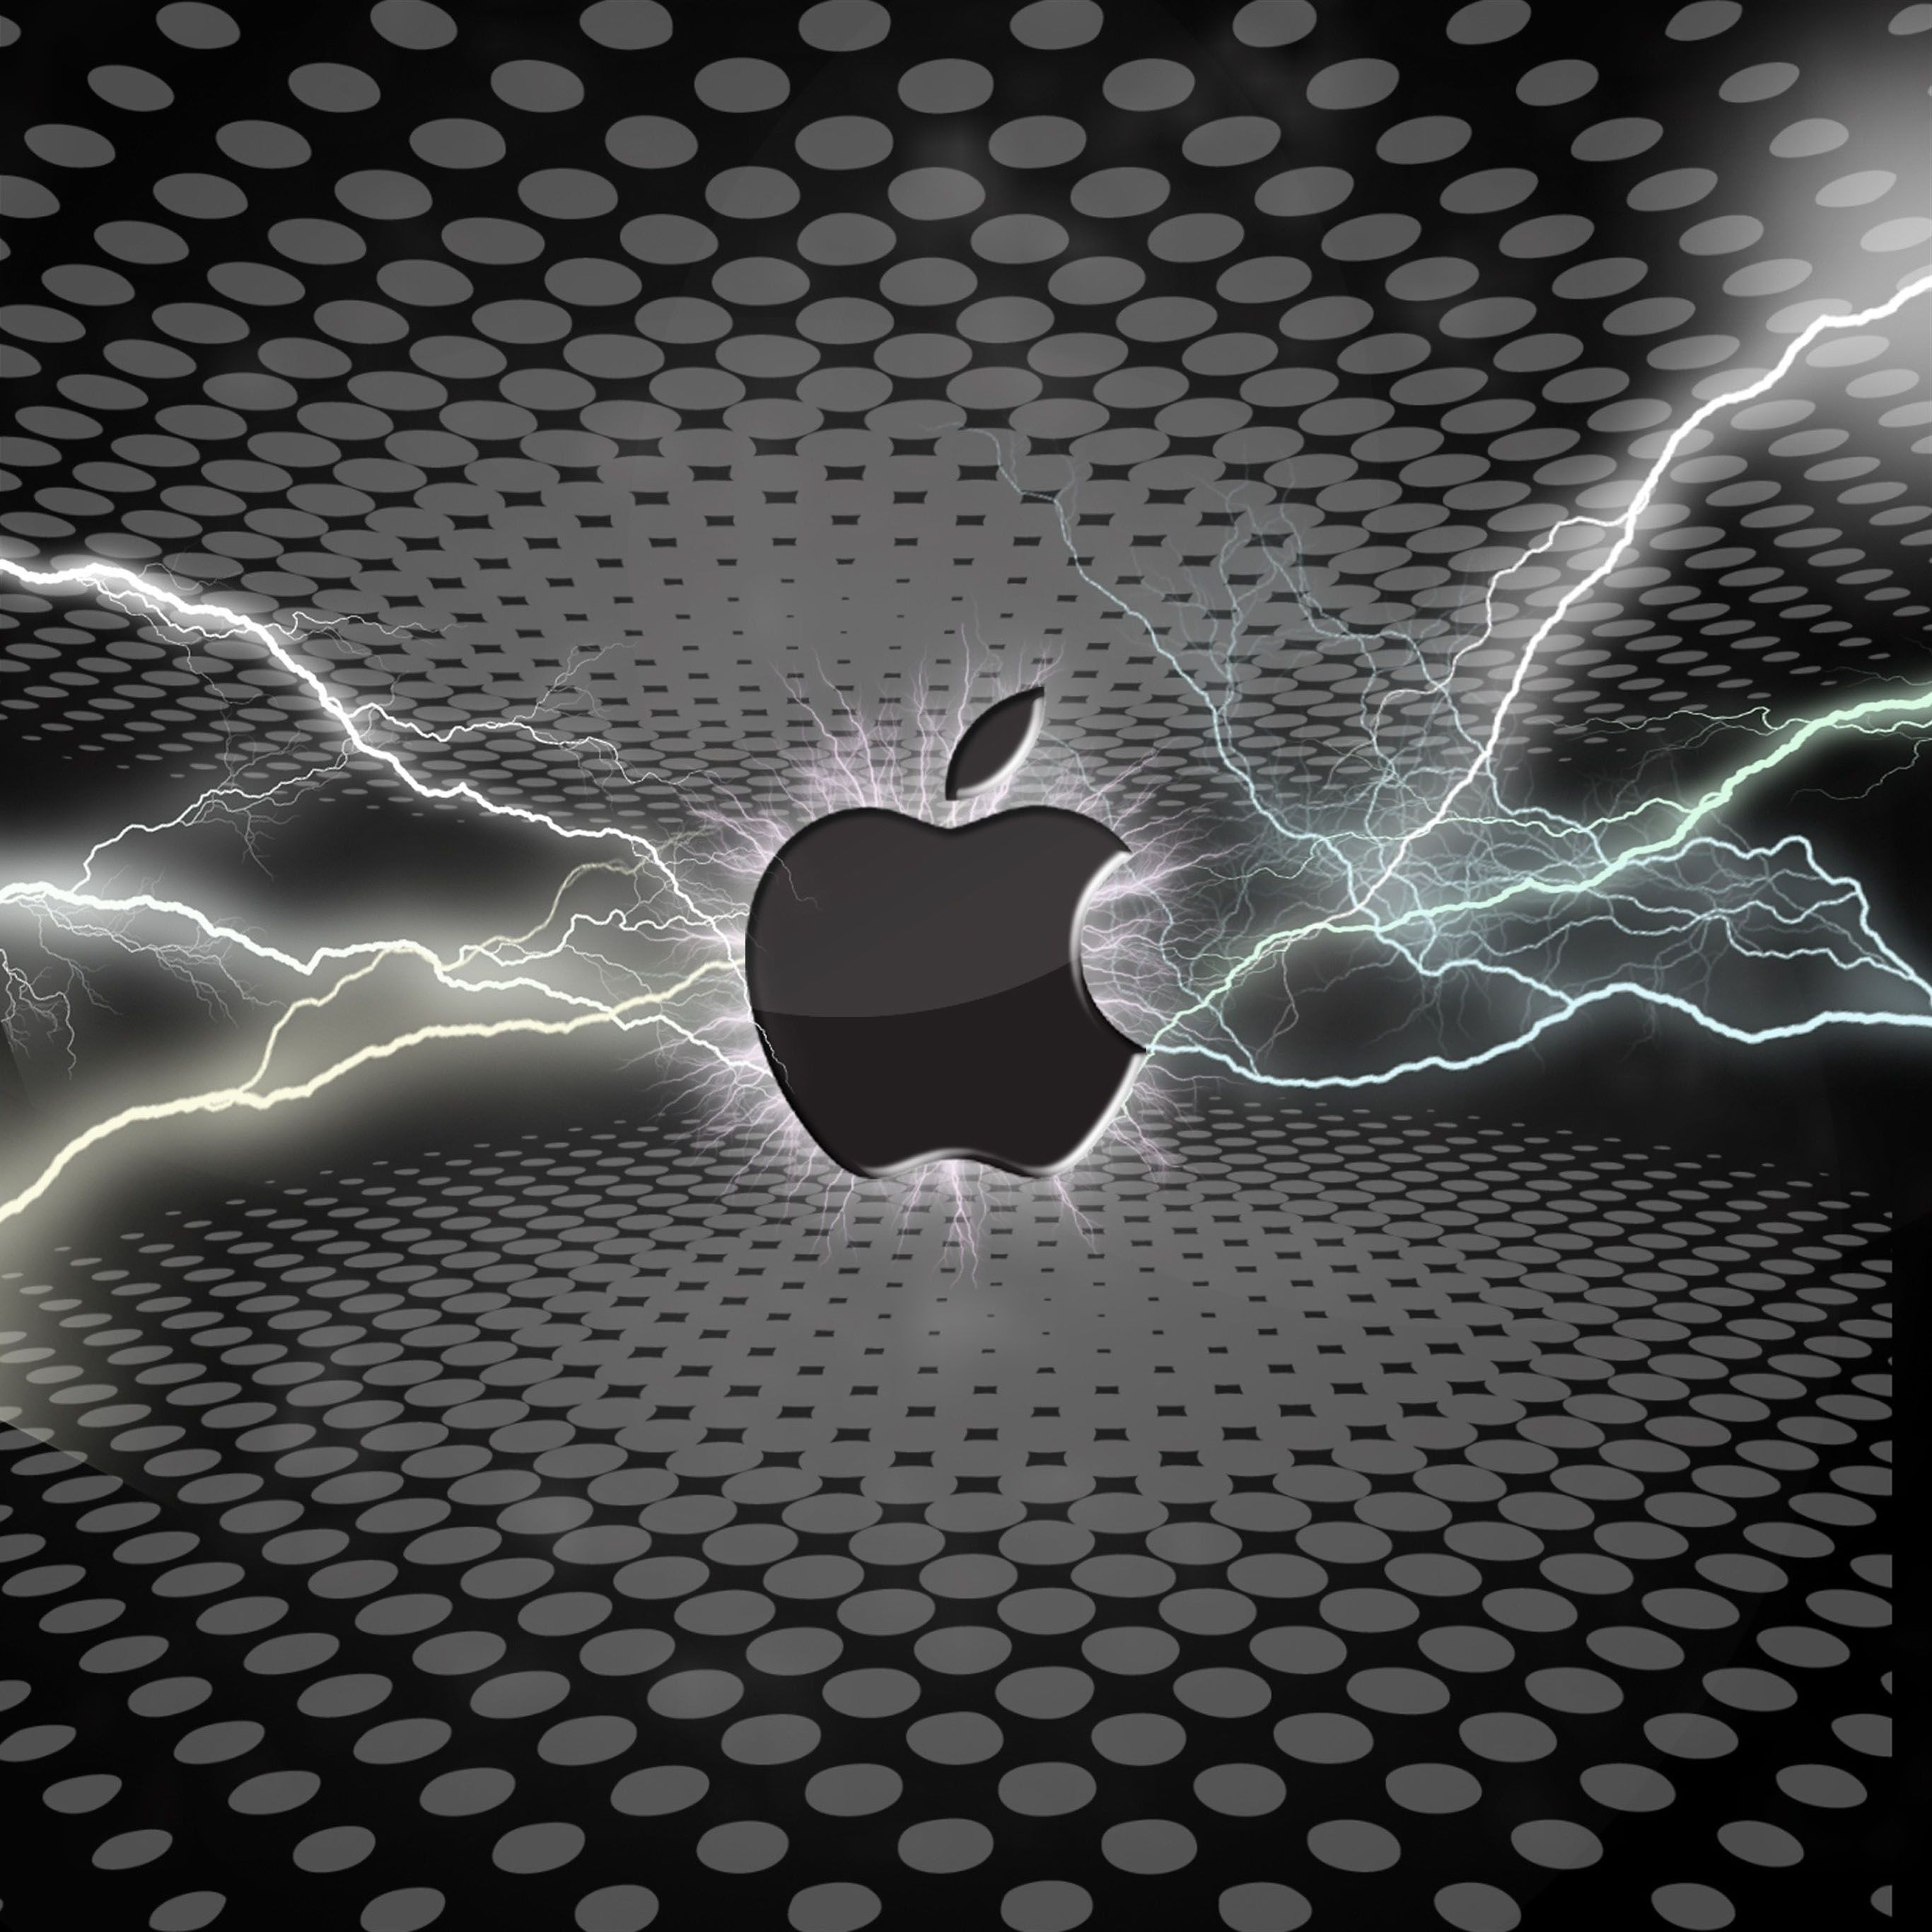 Apple iPad Pro Wallpaper 70 Ipad wallpaper, Apple wallpaper